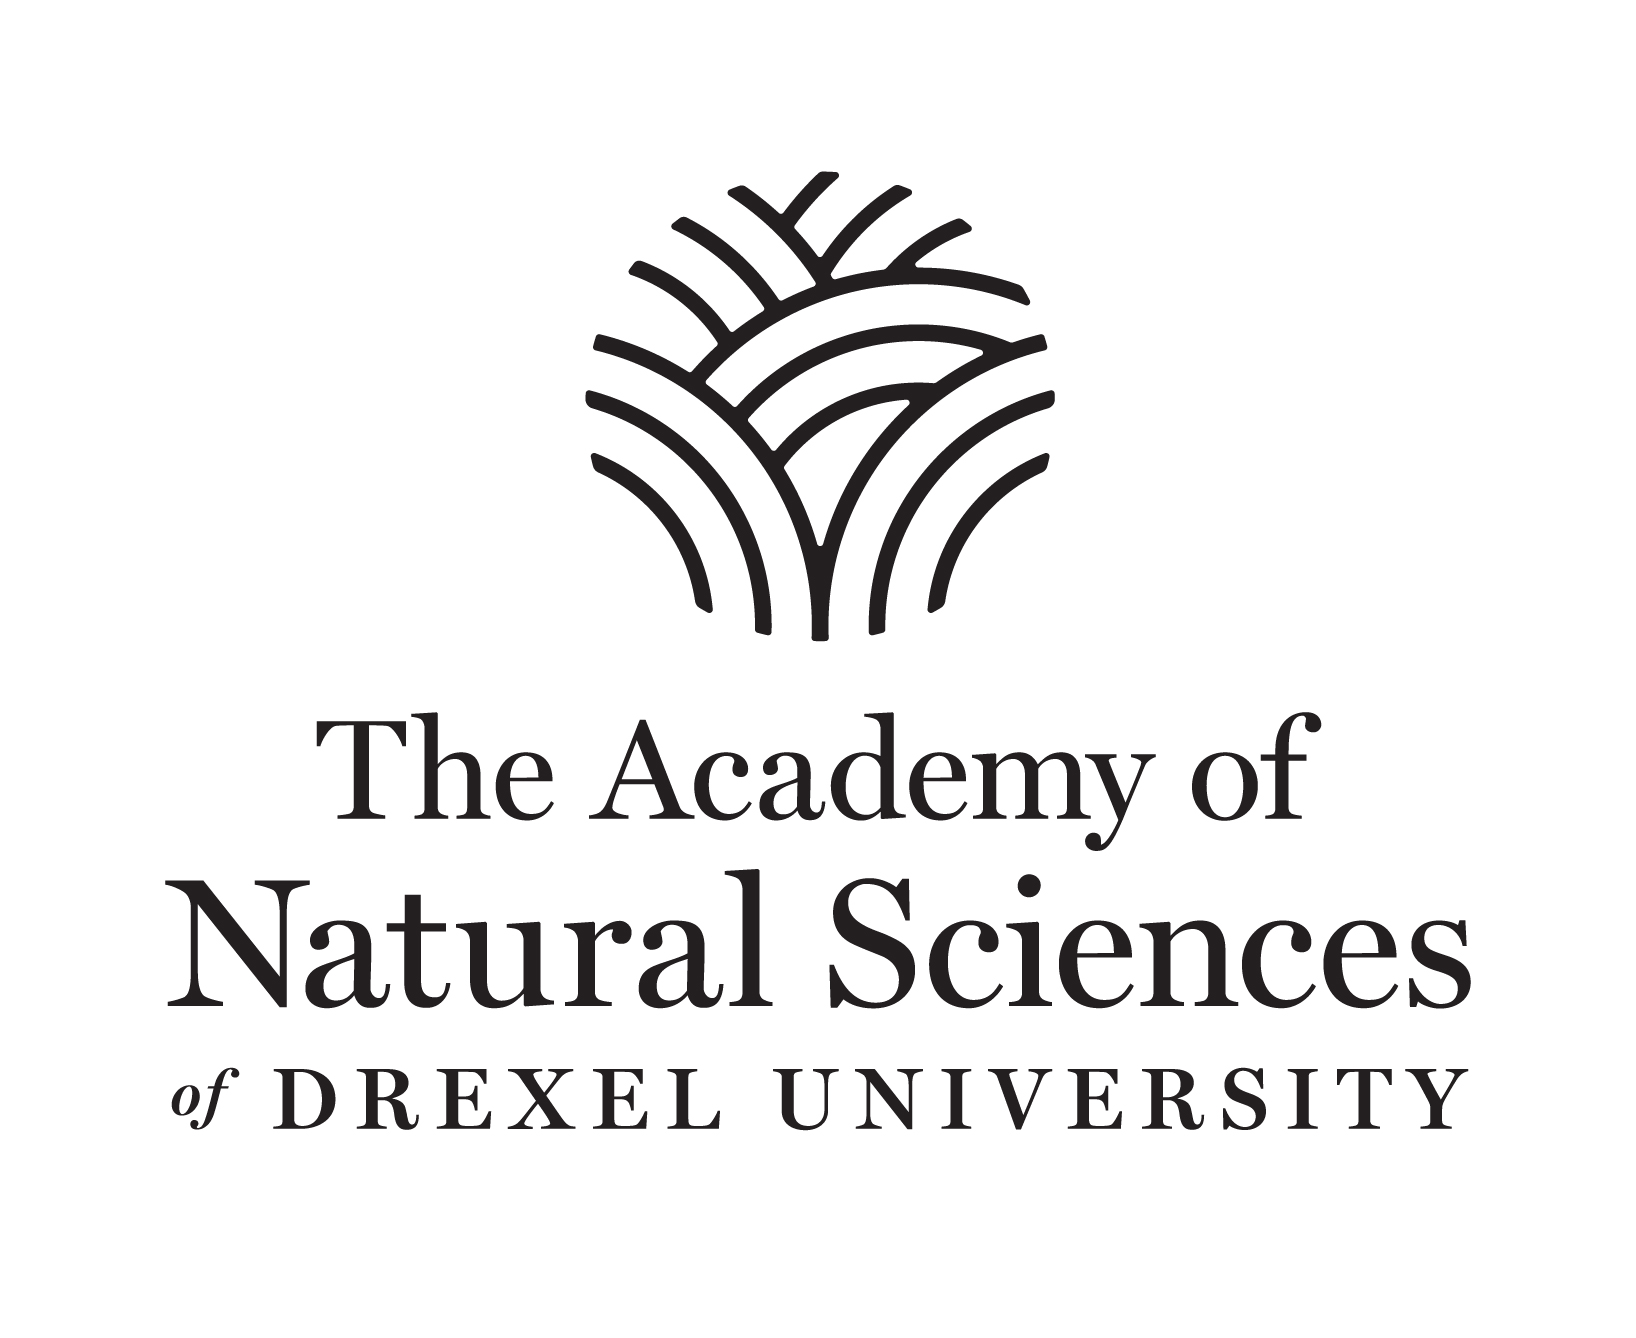 Repository: Academy of Natural Sciences of Drexel University